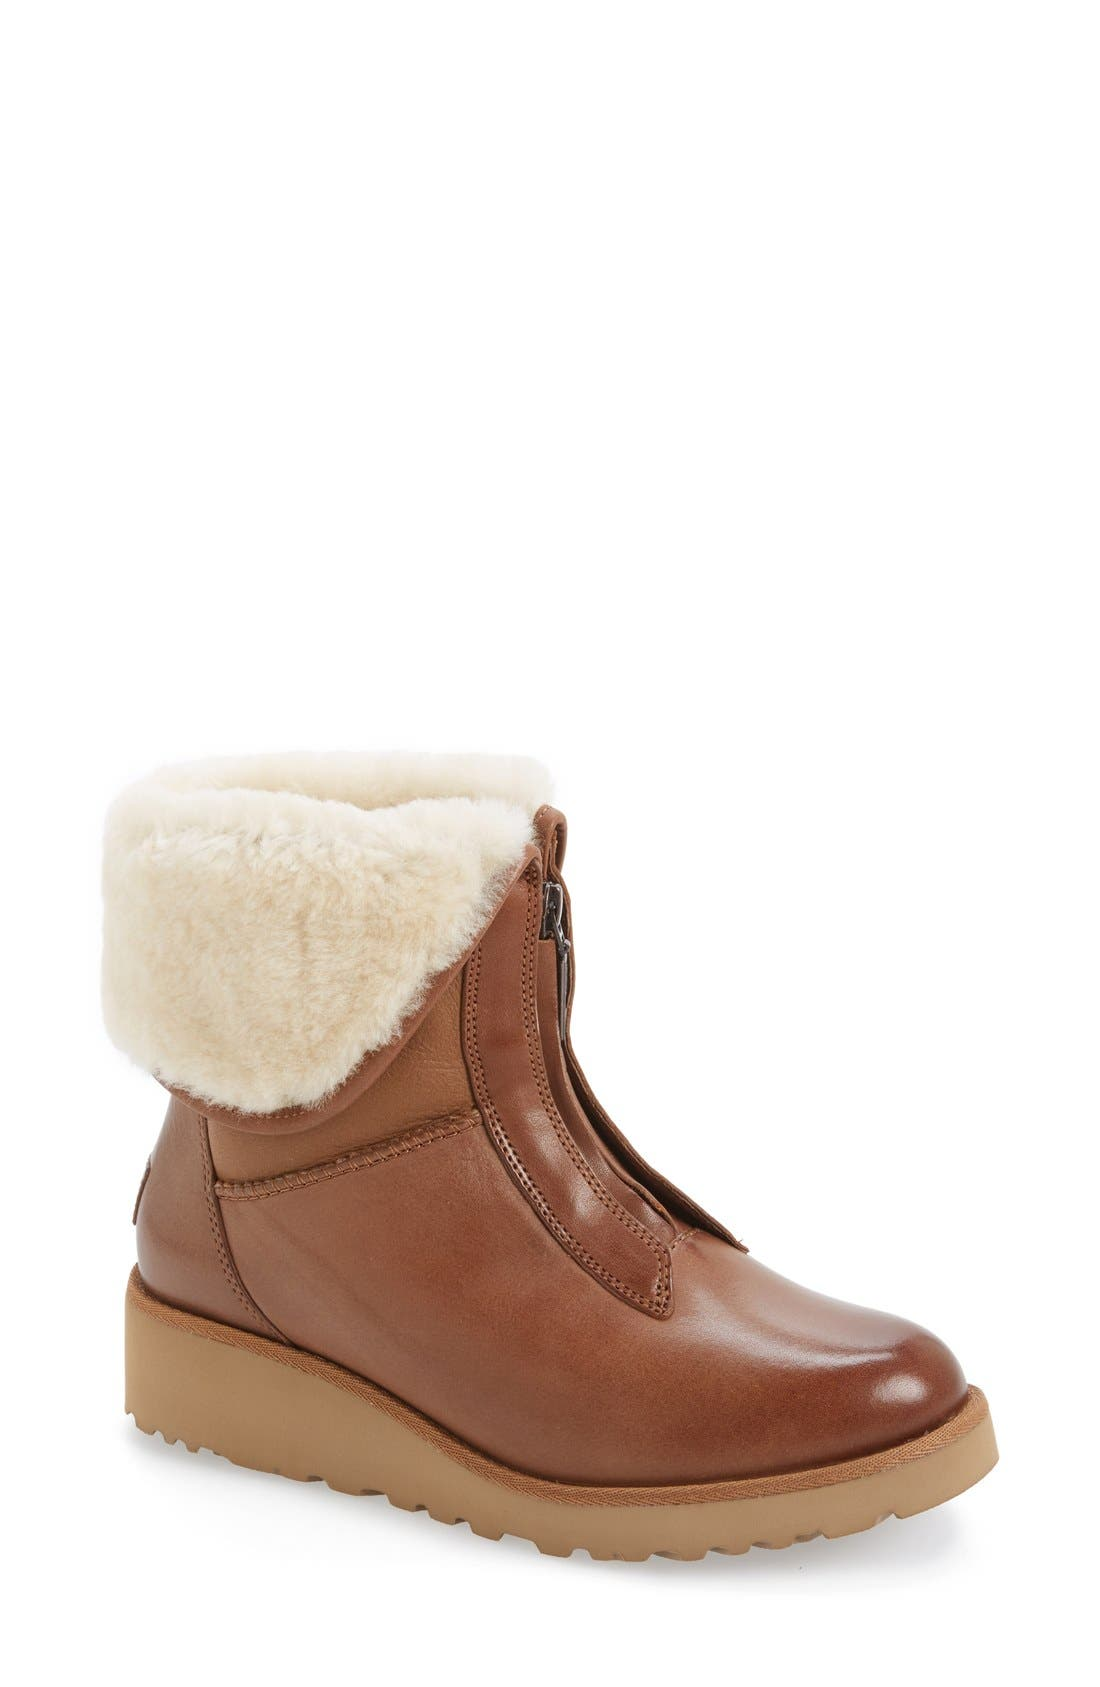 Main Image - UGG® 'Caleigh' Boot (Women)